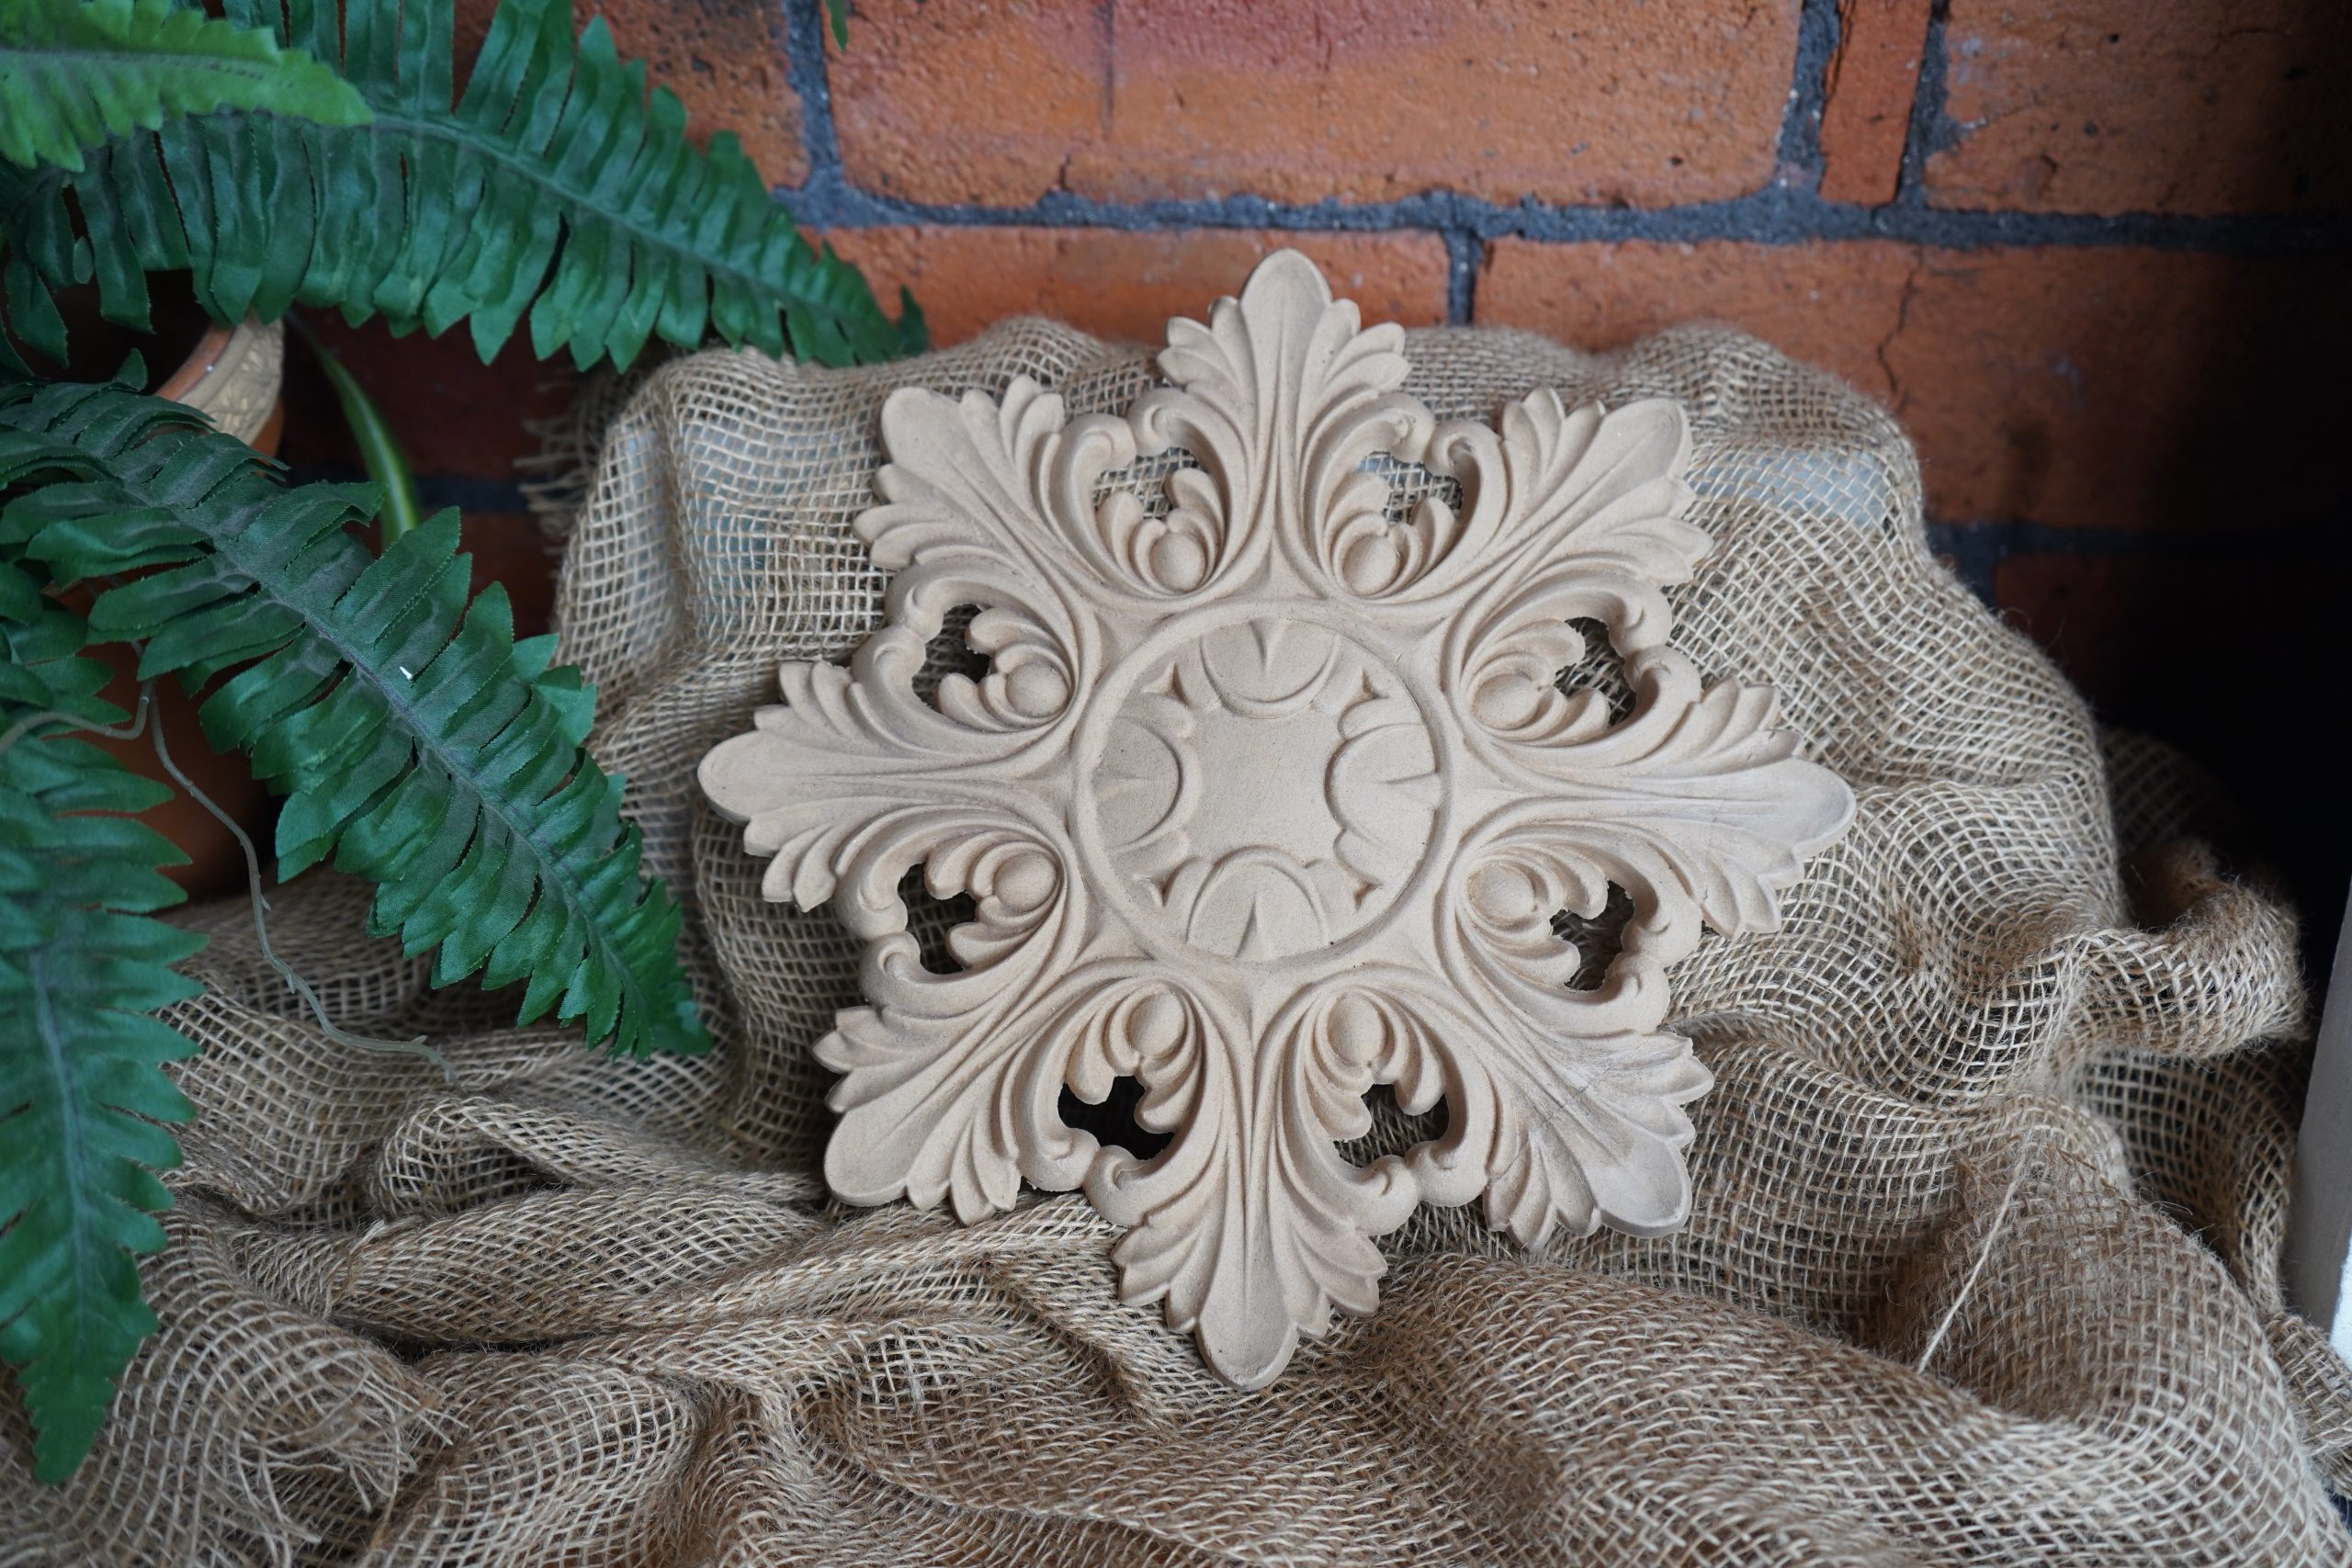 A bare bendable wood moulding in the shape of a star. It's sat on some hessian against a red brick background with green ferns on the left hand side.